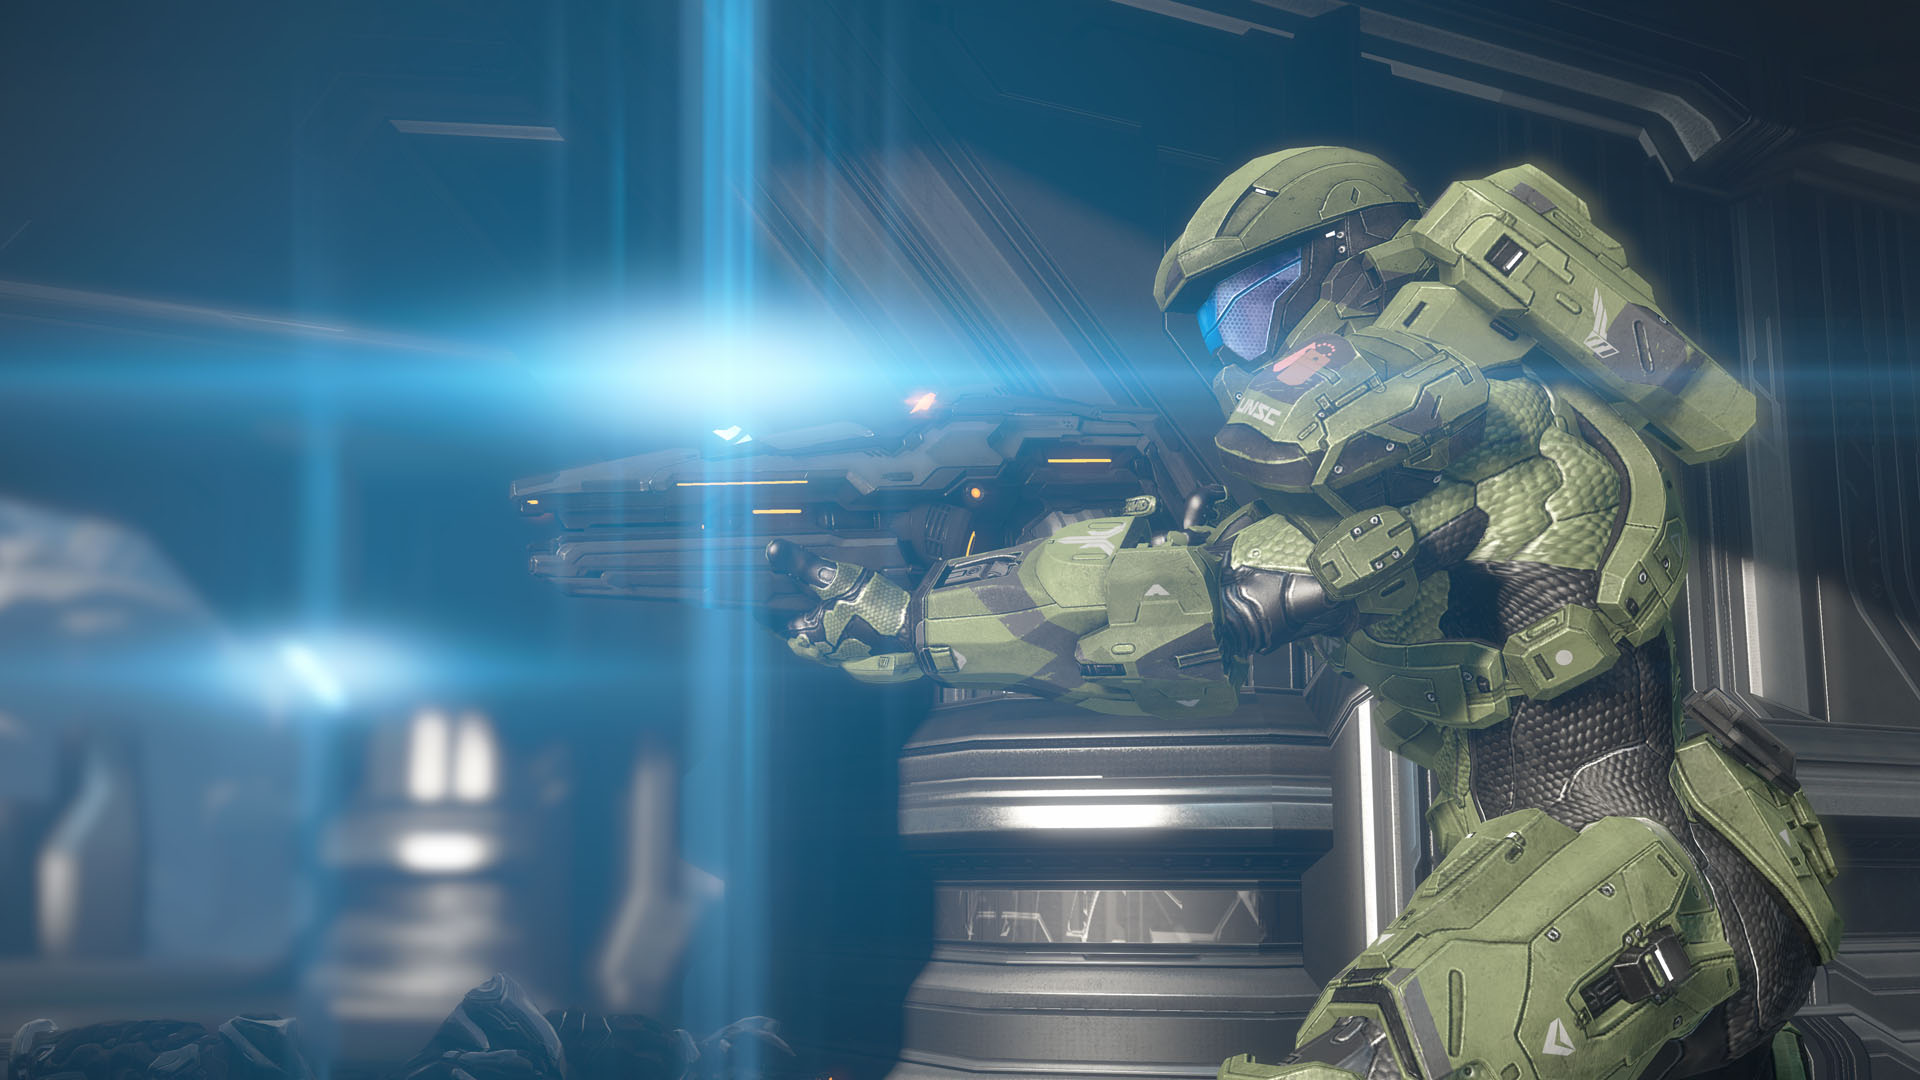 Spartan Ops Matchmaking not working Halo 4 - Microsoft Community